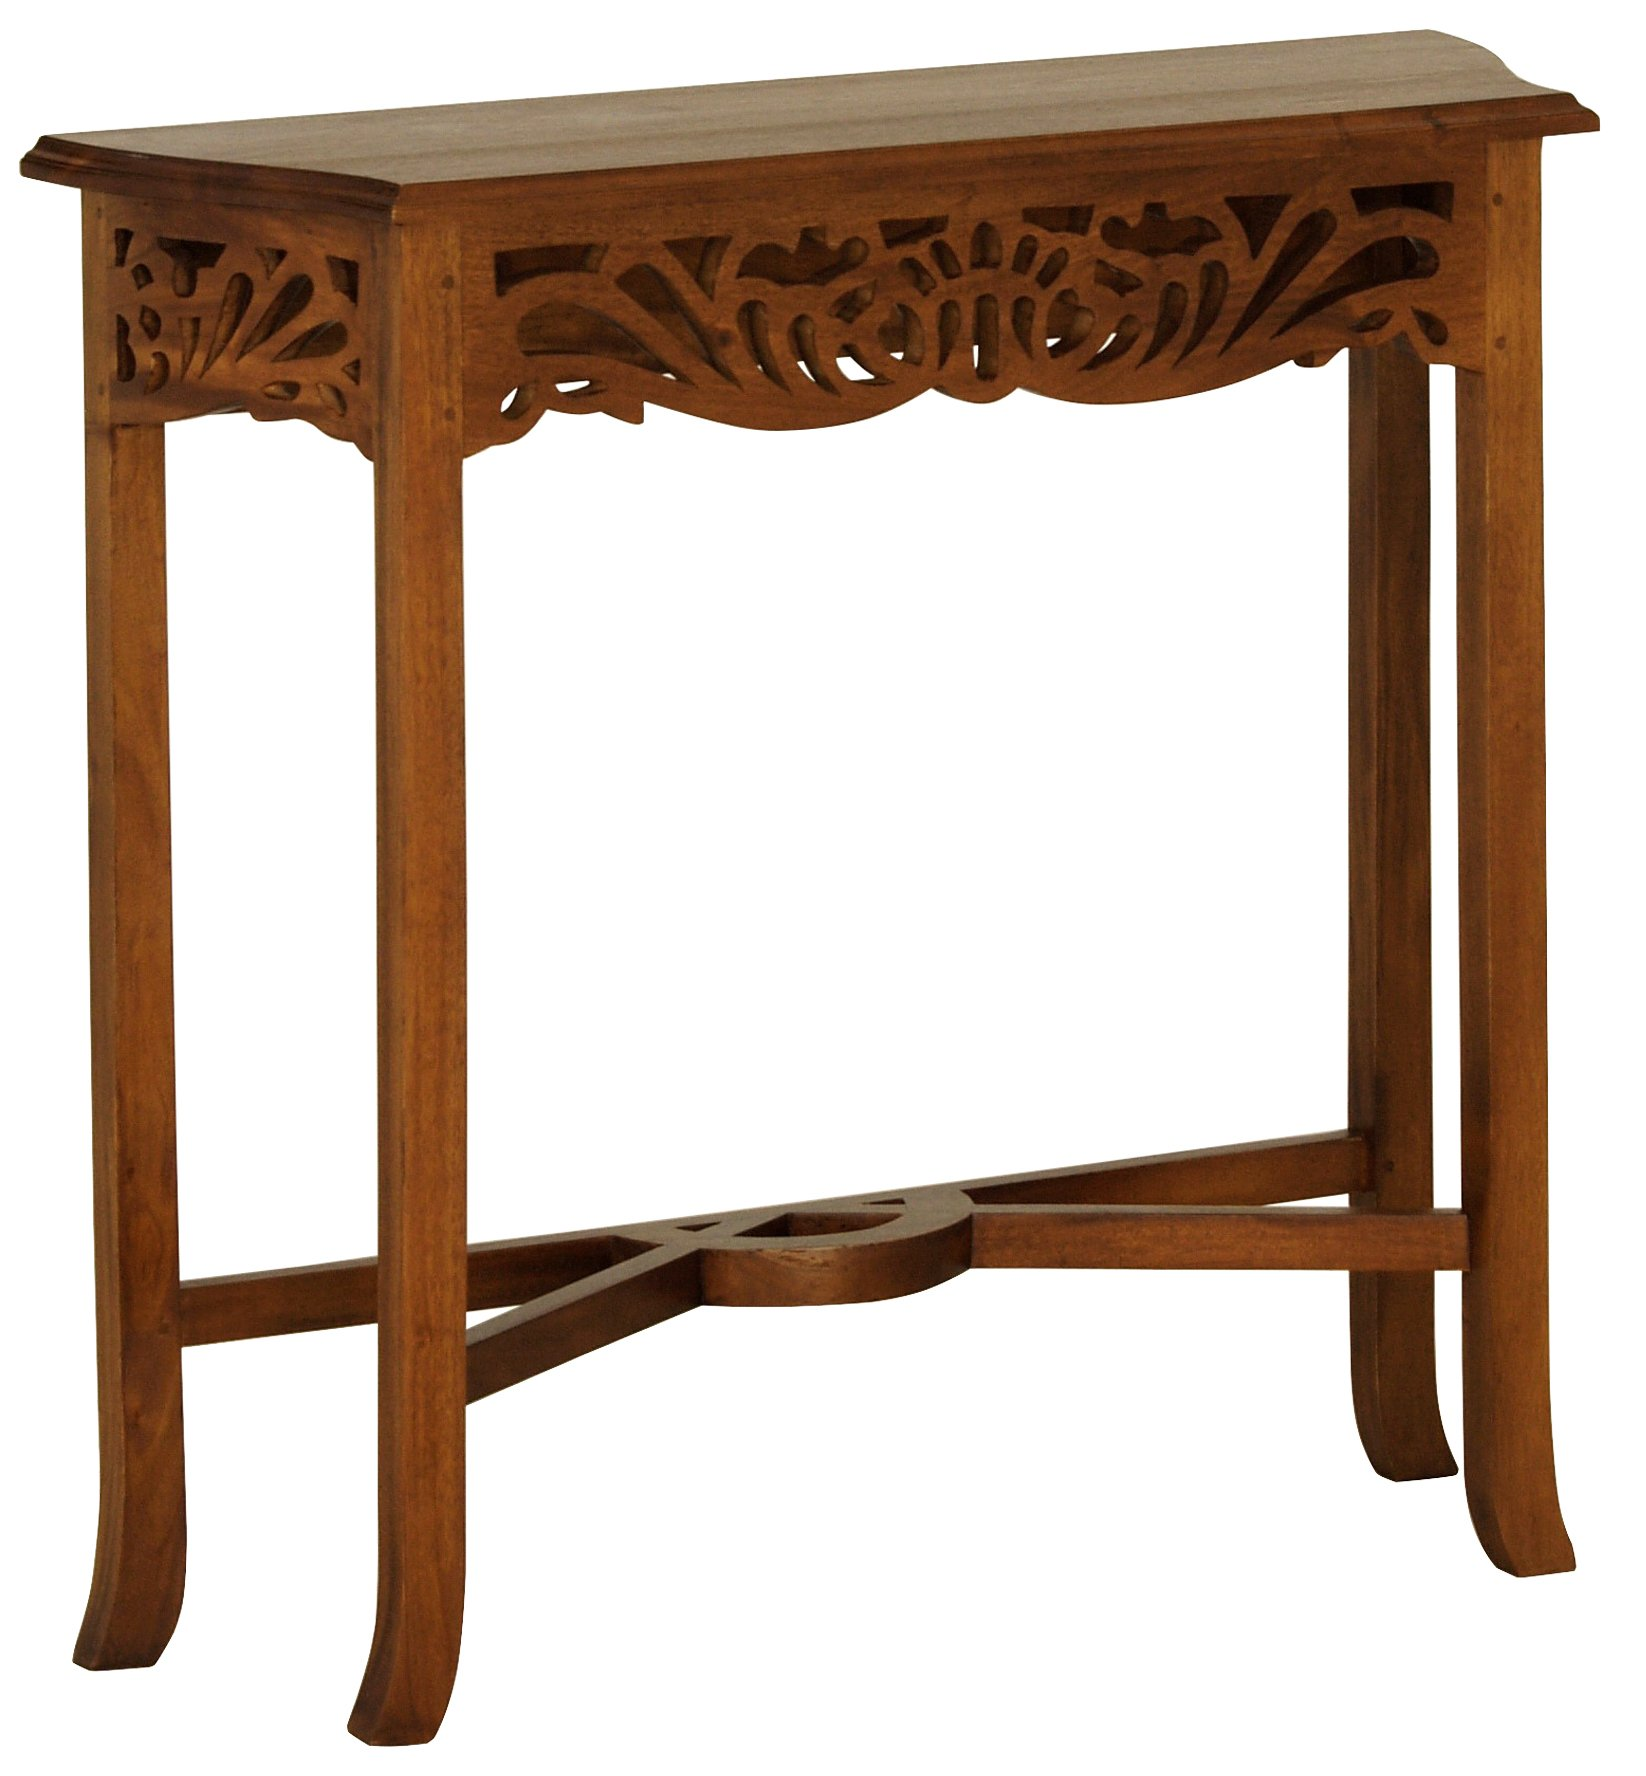 NES Furniture Fine Handcrafted Solid Mahogany Wood Bordeaux Side Table - 32 inches